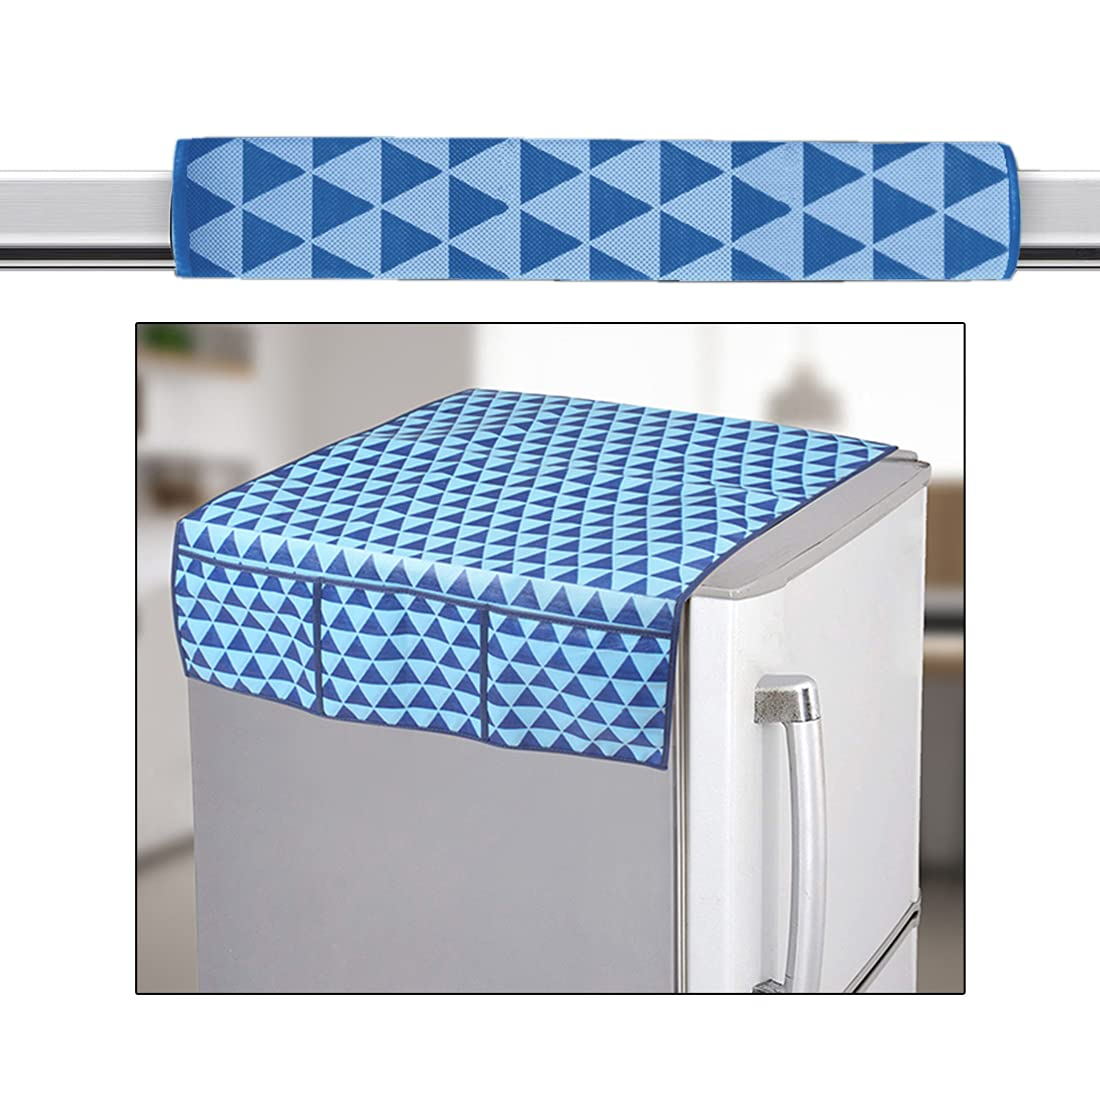 PrettyKraftsAppliance Cover Combo of 1 Refrigerator Top Cover and 1 Handle Cover - (Blue) Set of 2